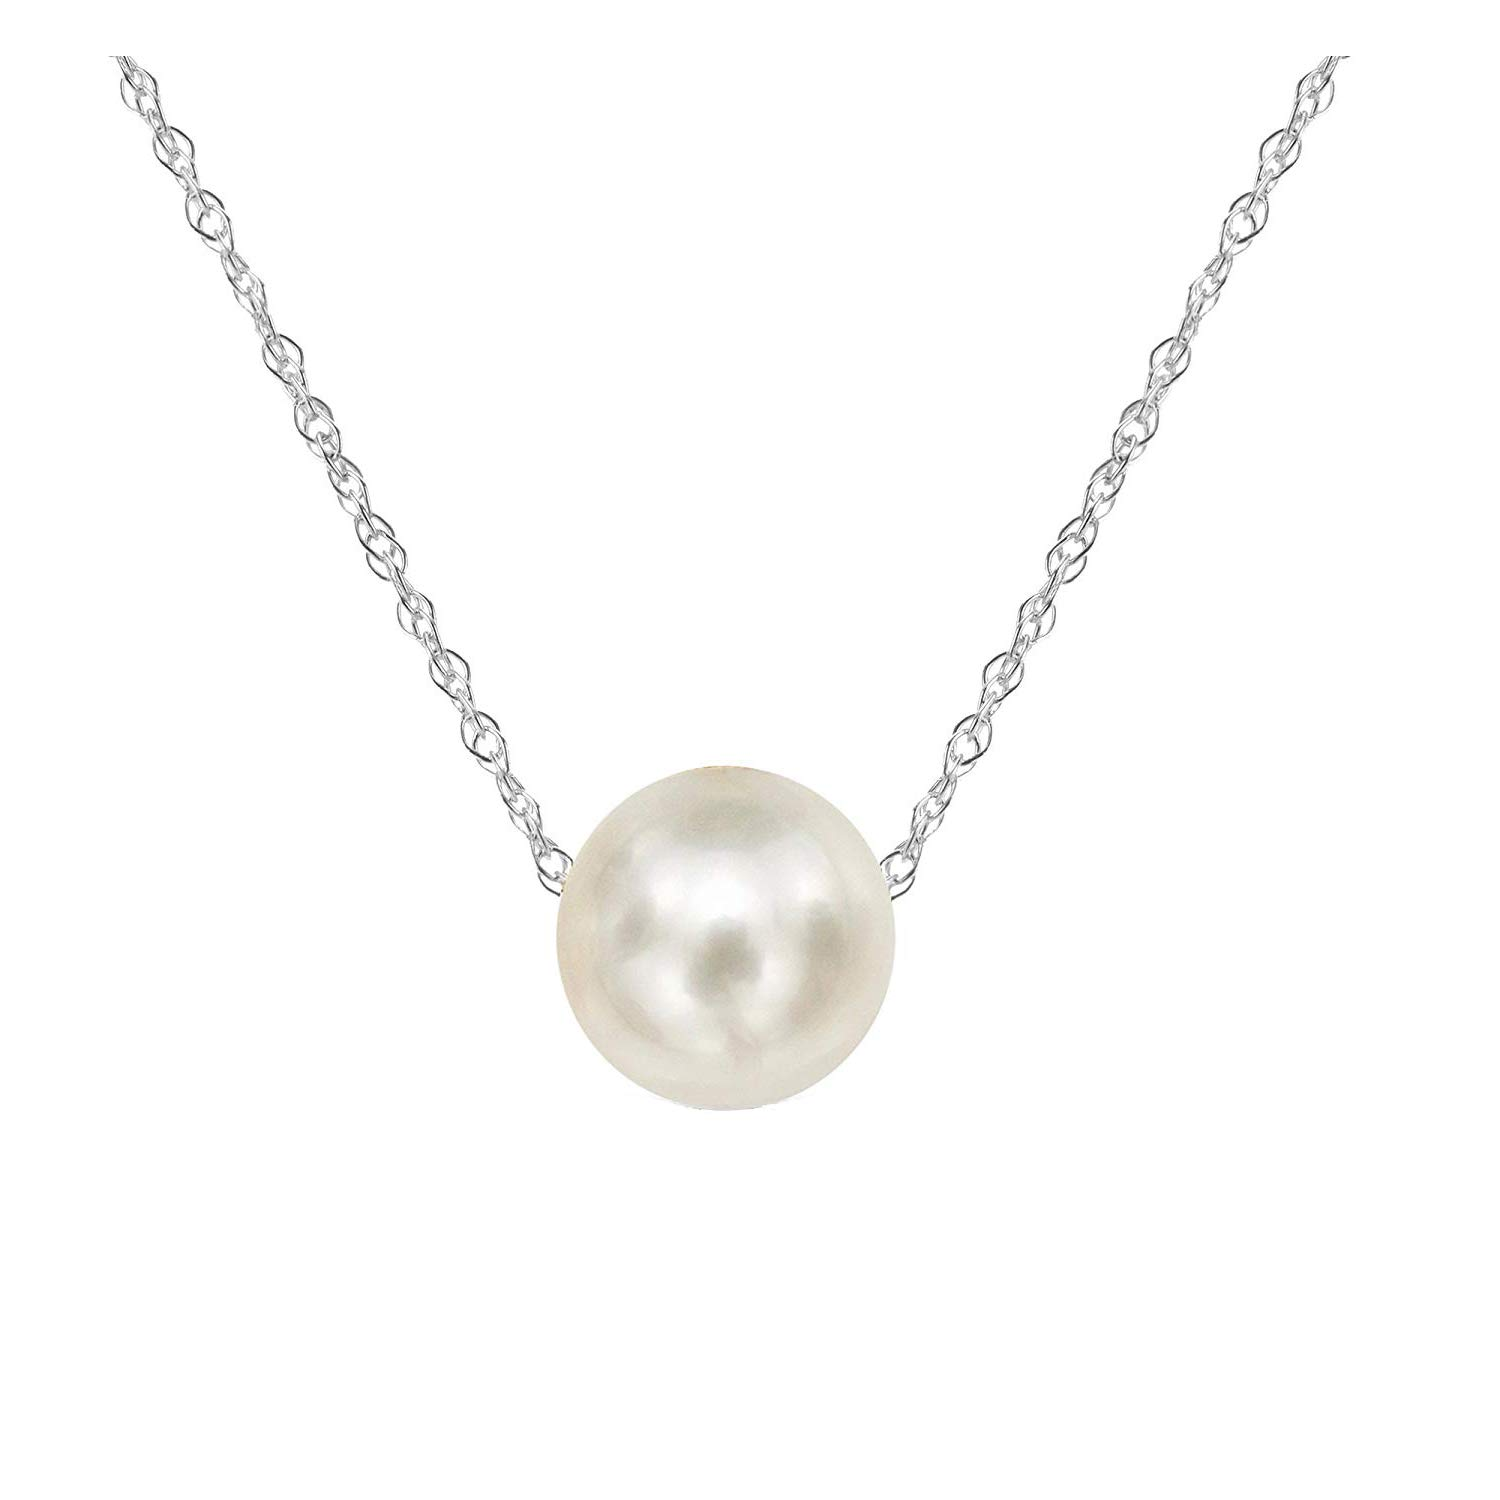 Caysim 925 Sterling Silver Necklace Handmade Pearl Chain Single Pendant For Women